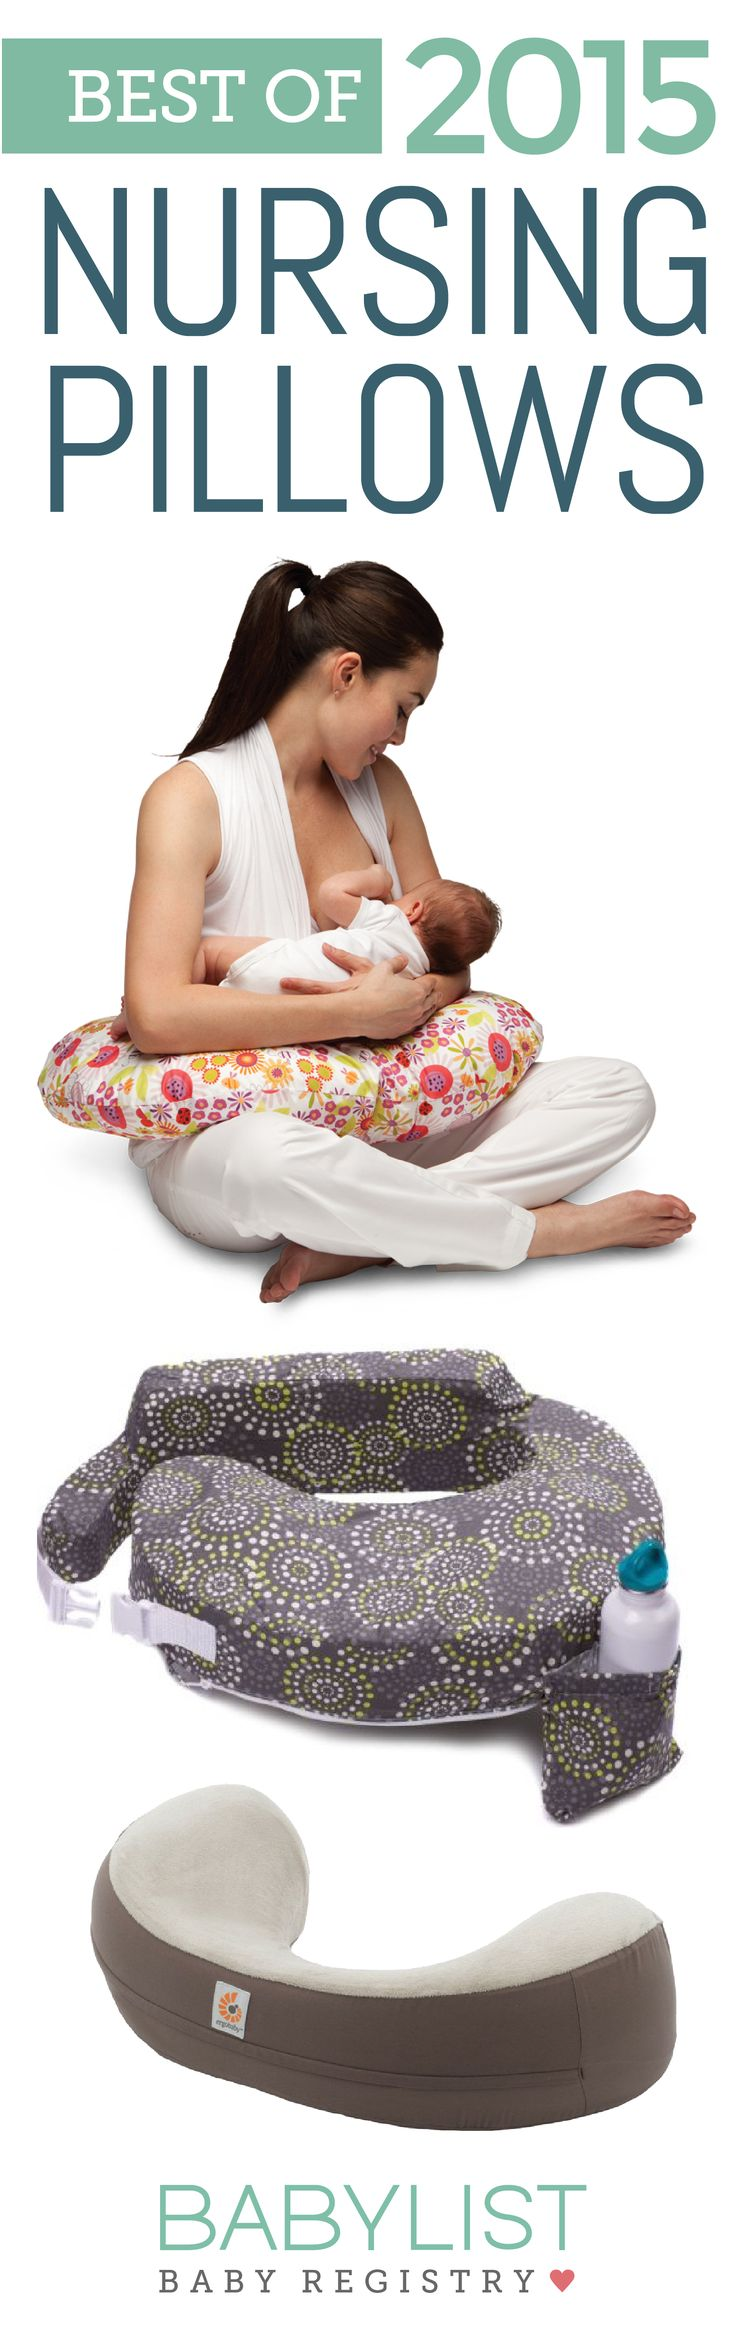 Need some advice on how to pick the best nursing pillow? Here are the top 5 picks of 2015 - based on our own research + input from thousands of parents. There is no one must-have nursing pillow. Every family is different. Use this guide to help you figure out the best choice for you and your little one.